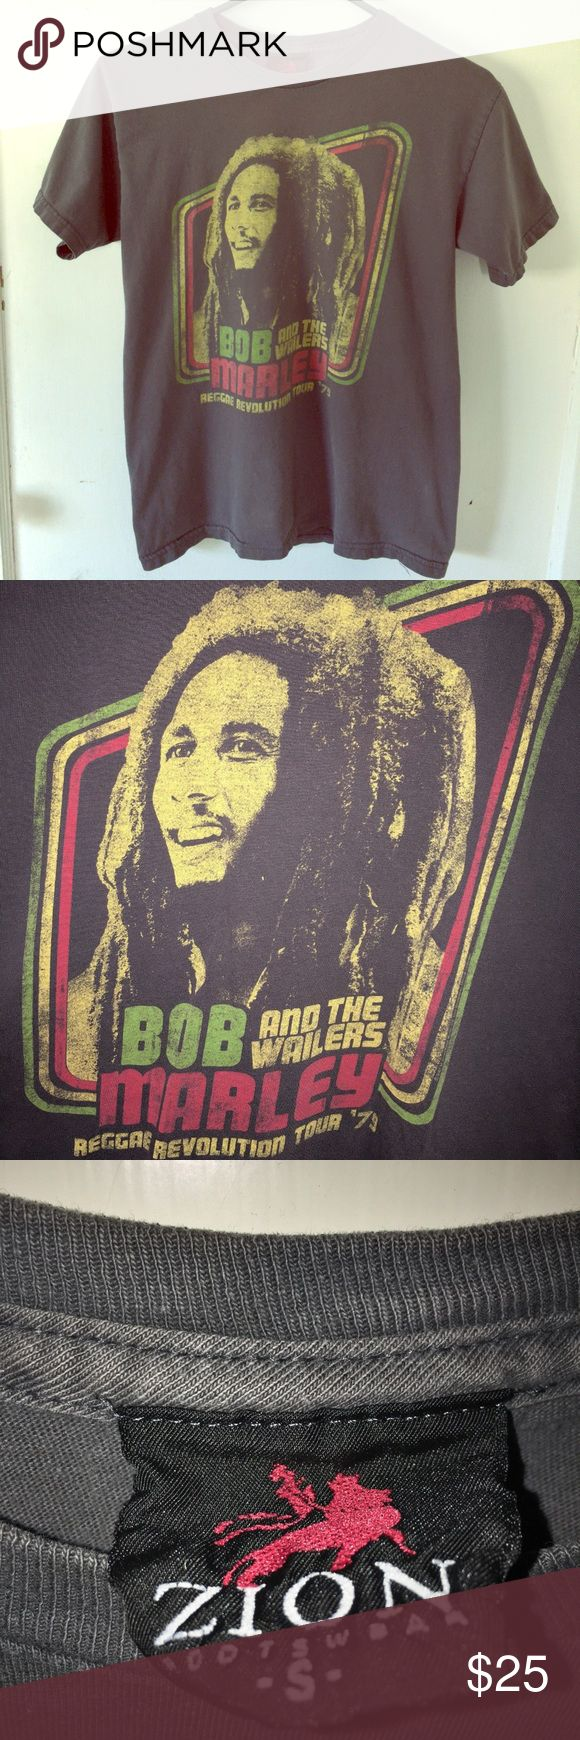 "Vintage Bob Marley & the Wailers T-Shirt Vintage Bob Marley & the Wailers ""Reggae Revolution Tour '79"" T-Shirt. Zion Rootswear Shirts Tees - Short Sleeve"